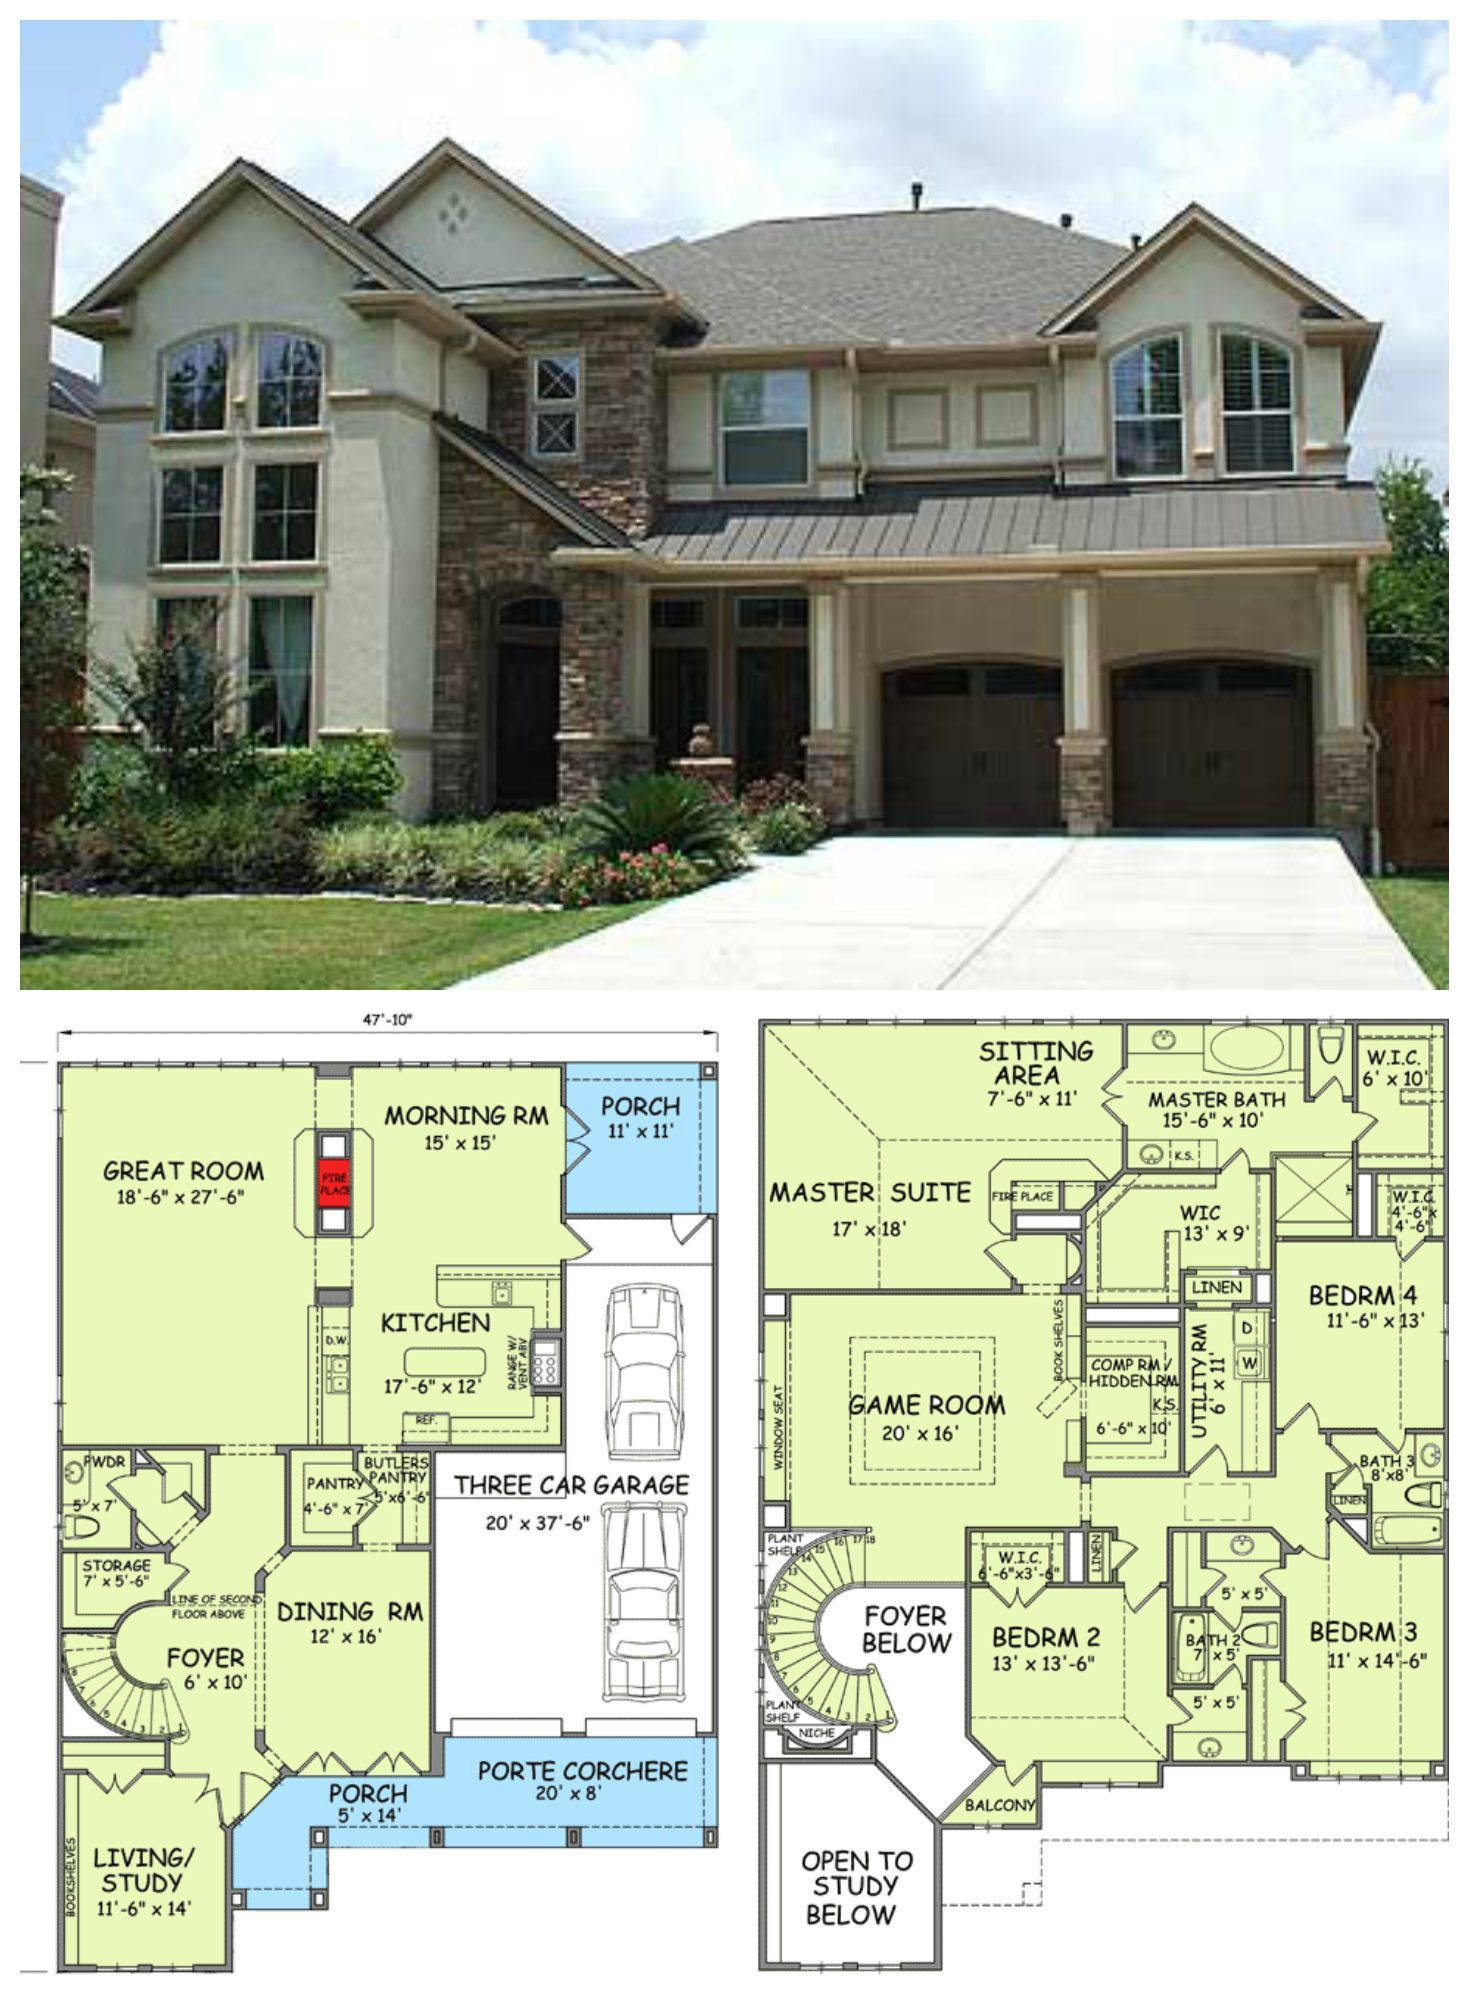 Floor Plan With Hidden Room Affordable House Plans House Plans Dream House Plans